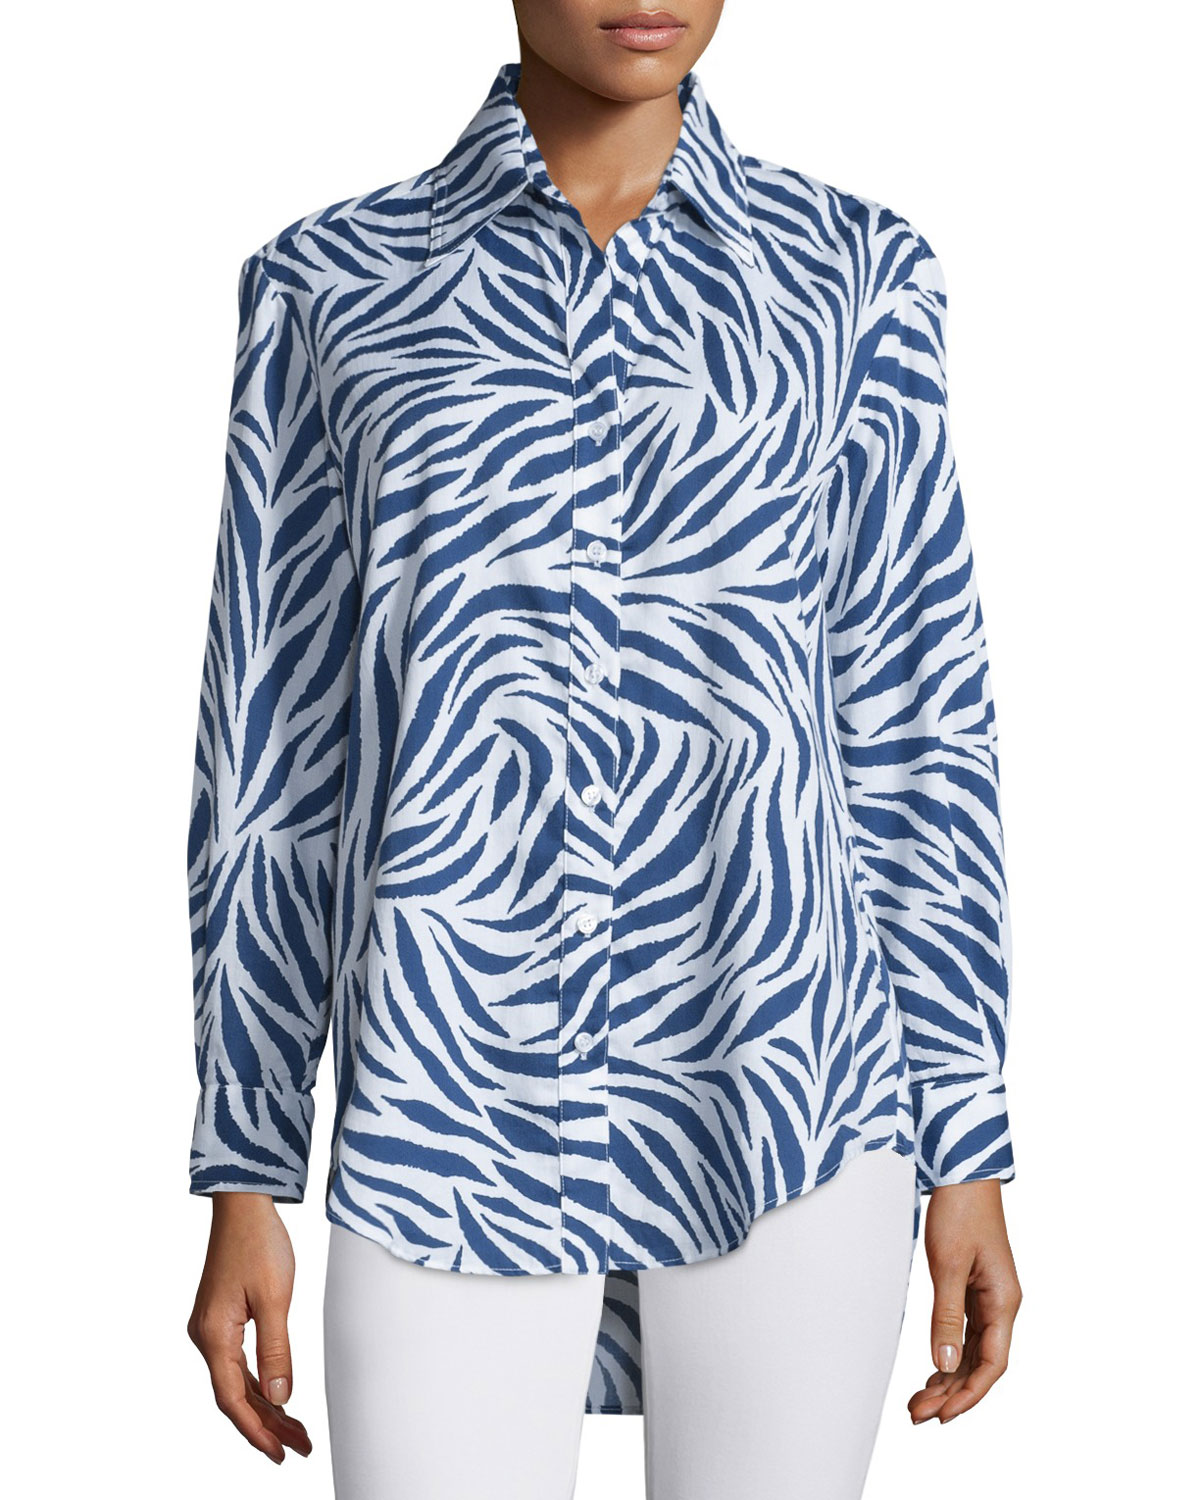 Monica Zebra-Print Sateen Blouse, Royal/White